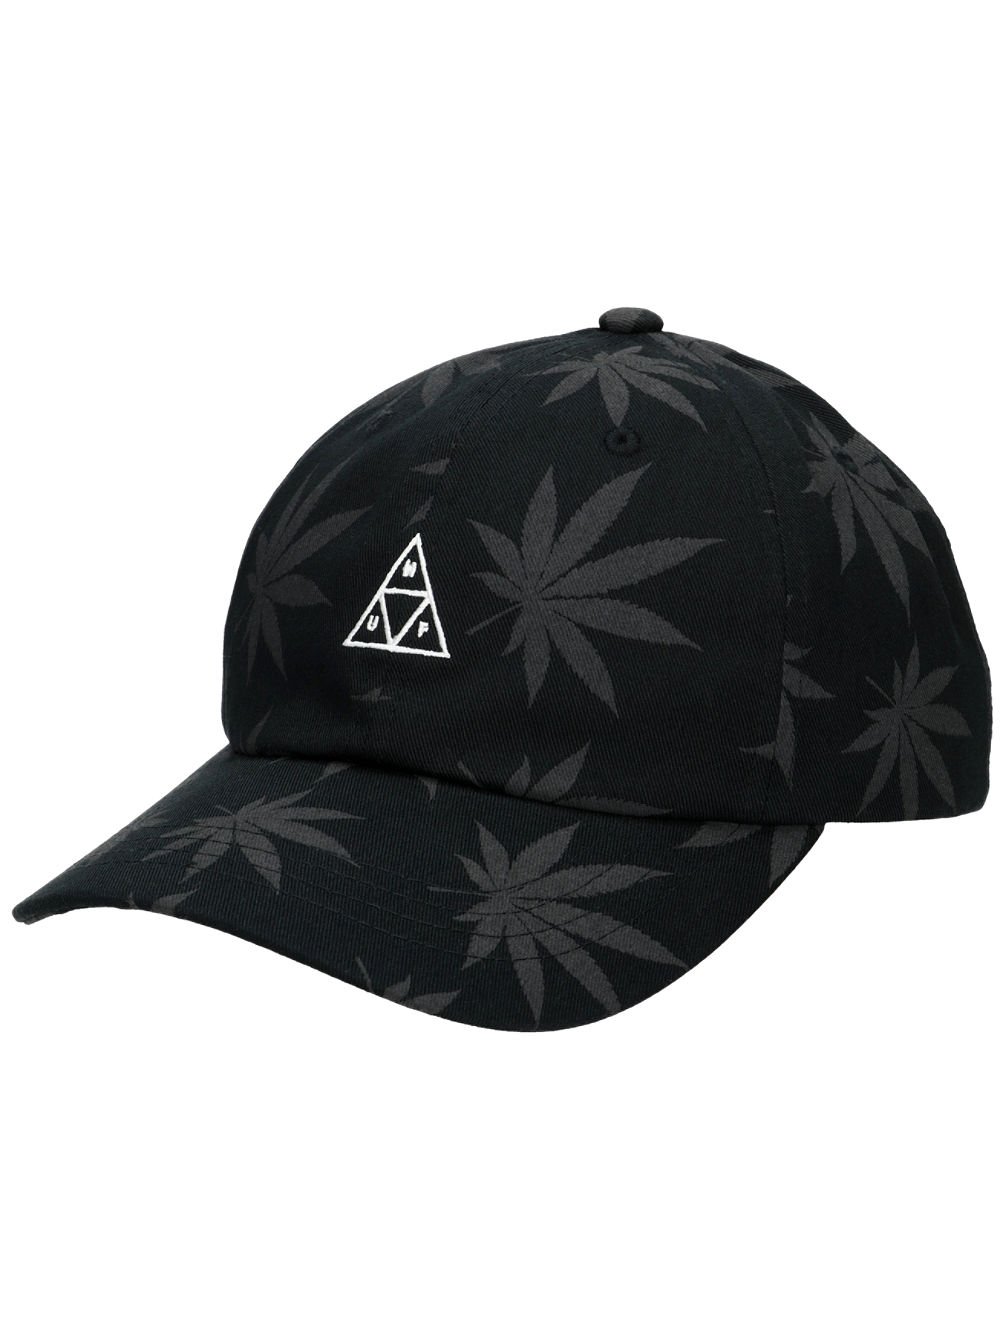 420 Triple Triangle Dad Cap